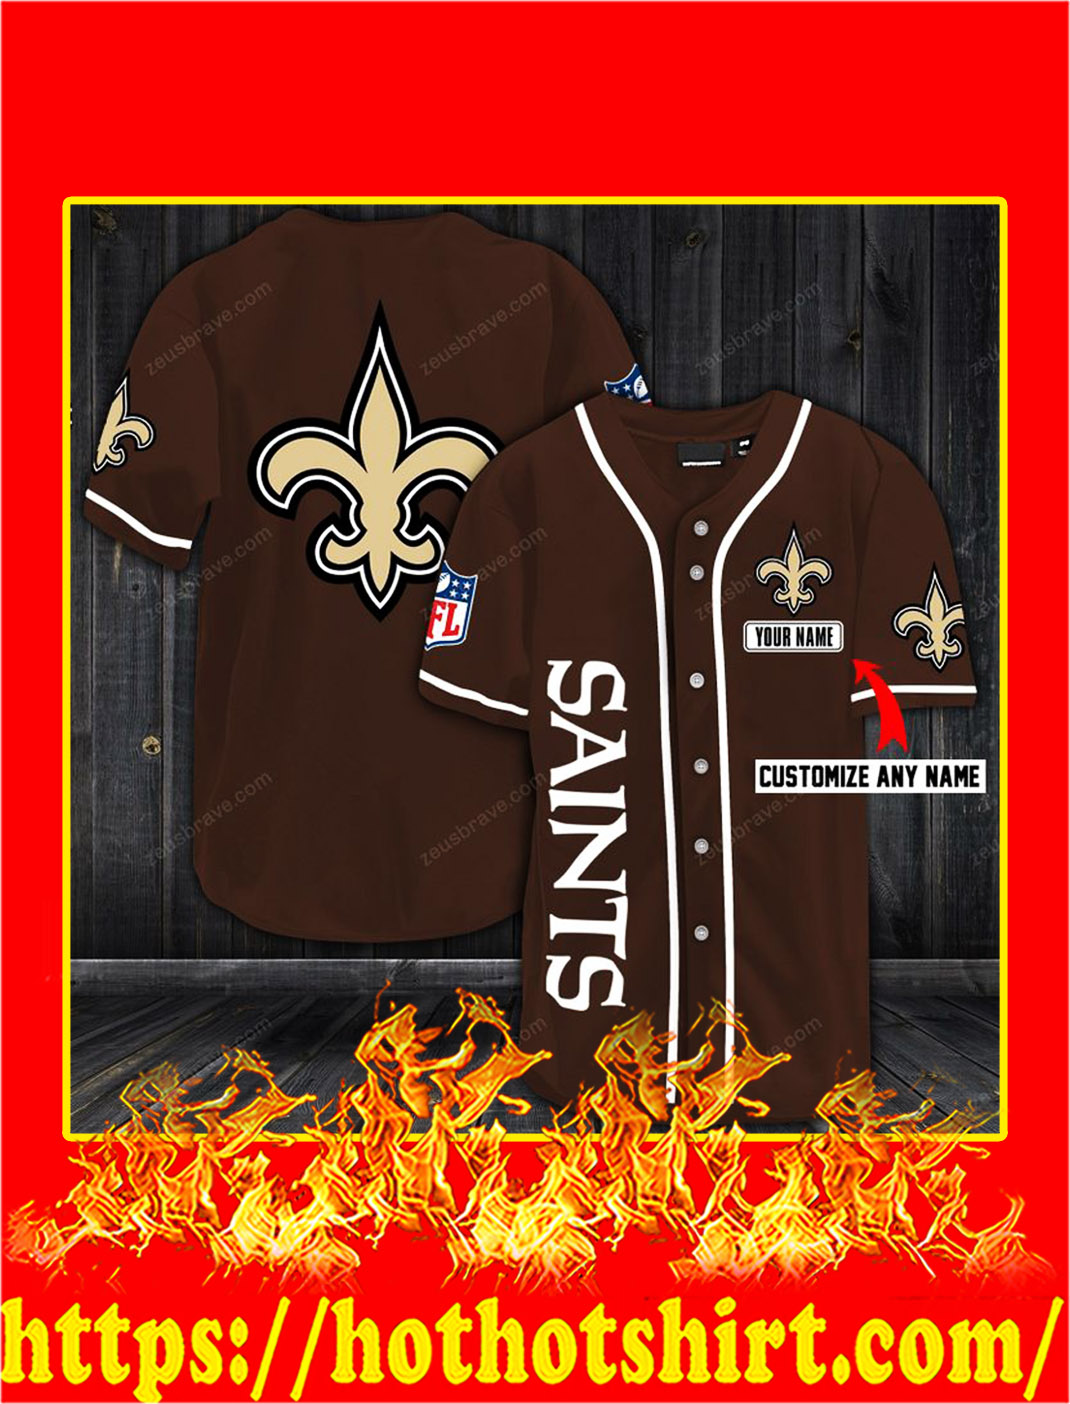 Customize name new orleans saints hawaiian shirt- brown